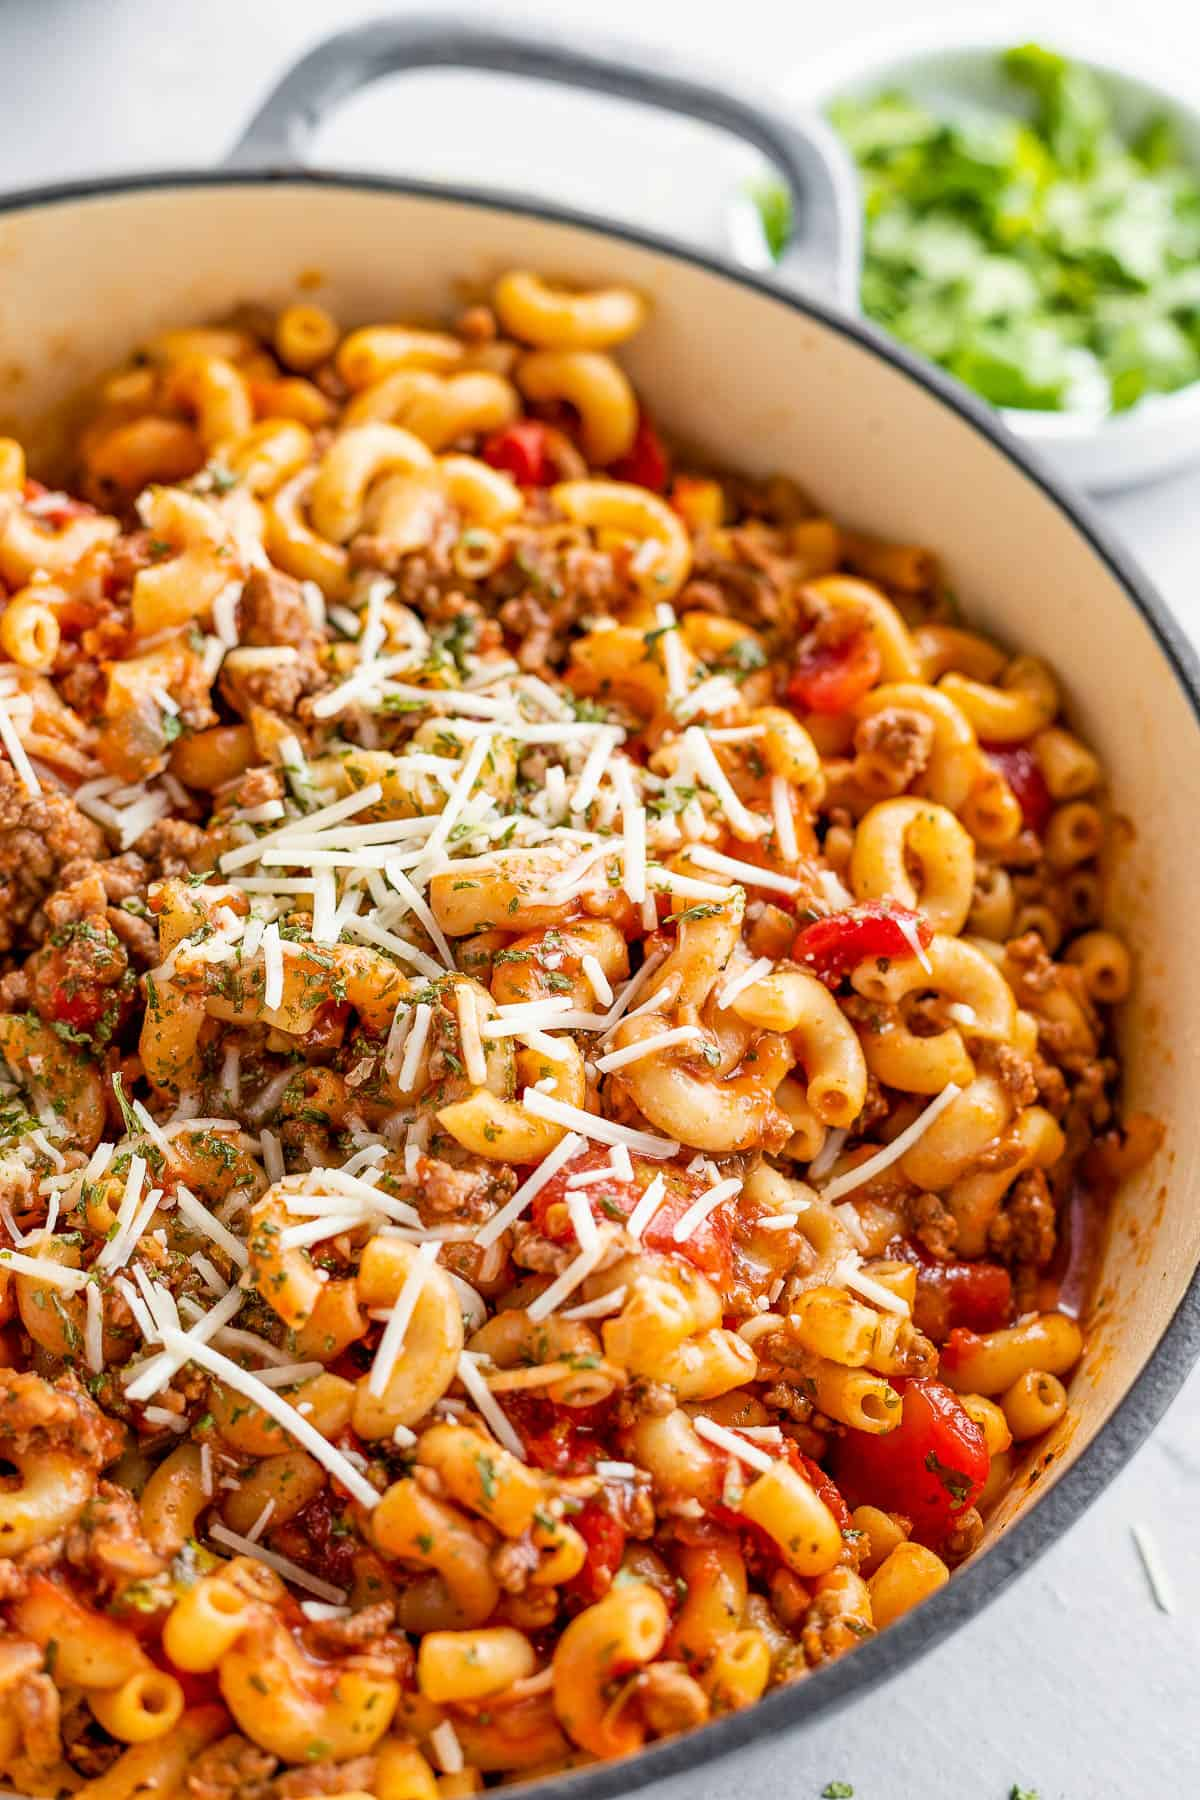 A Gray Pot Full of American Goulash Topped with Chopped Parsley and Grated Parmesan